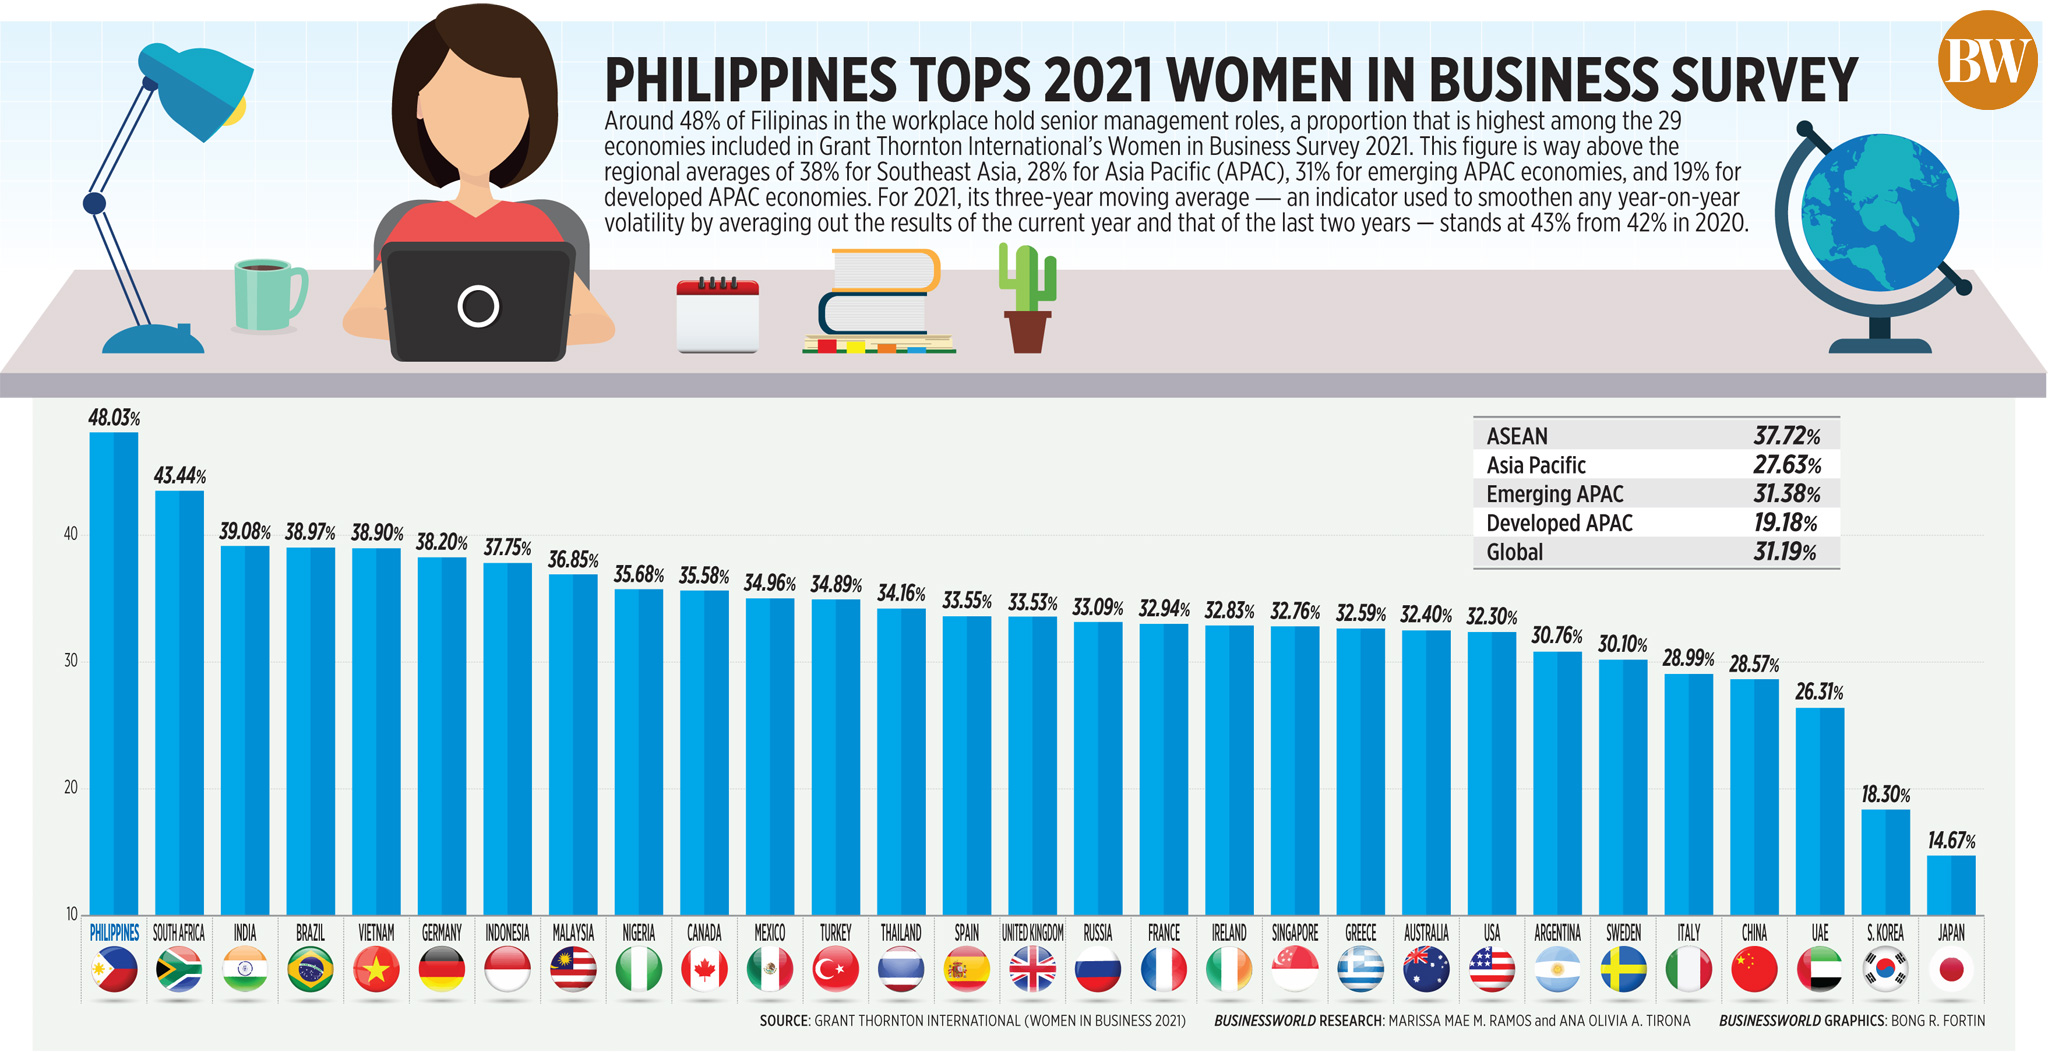 Philippines tops 2021 women in business survey